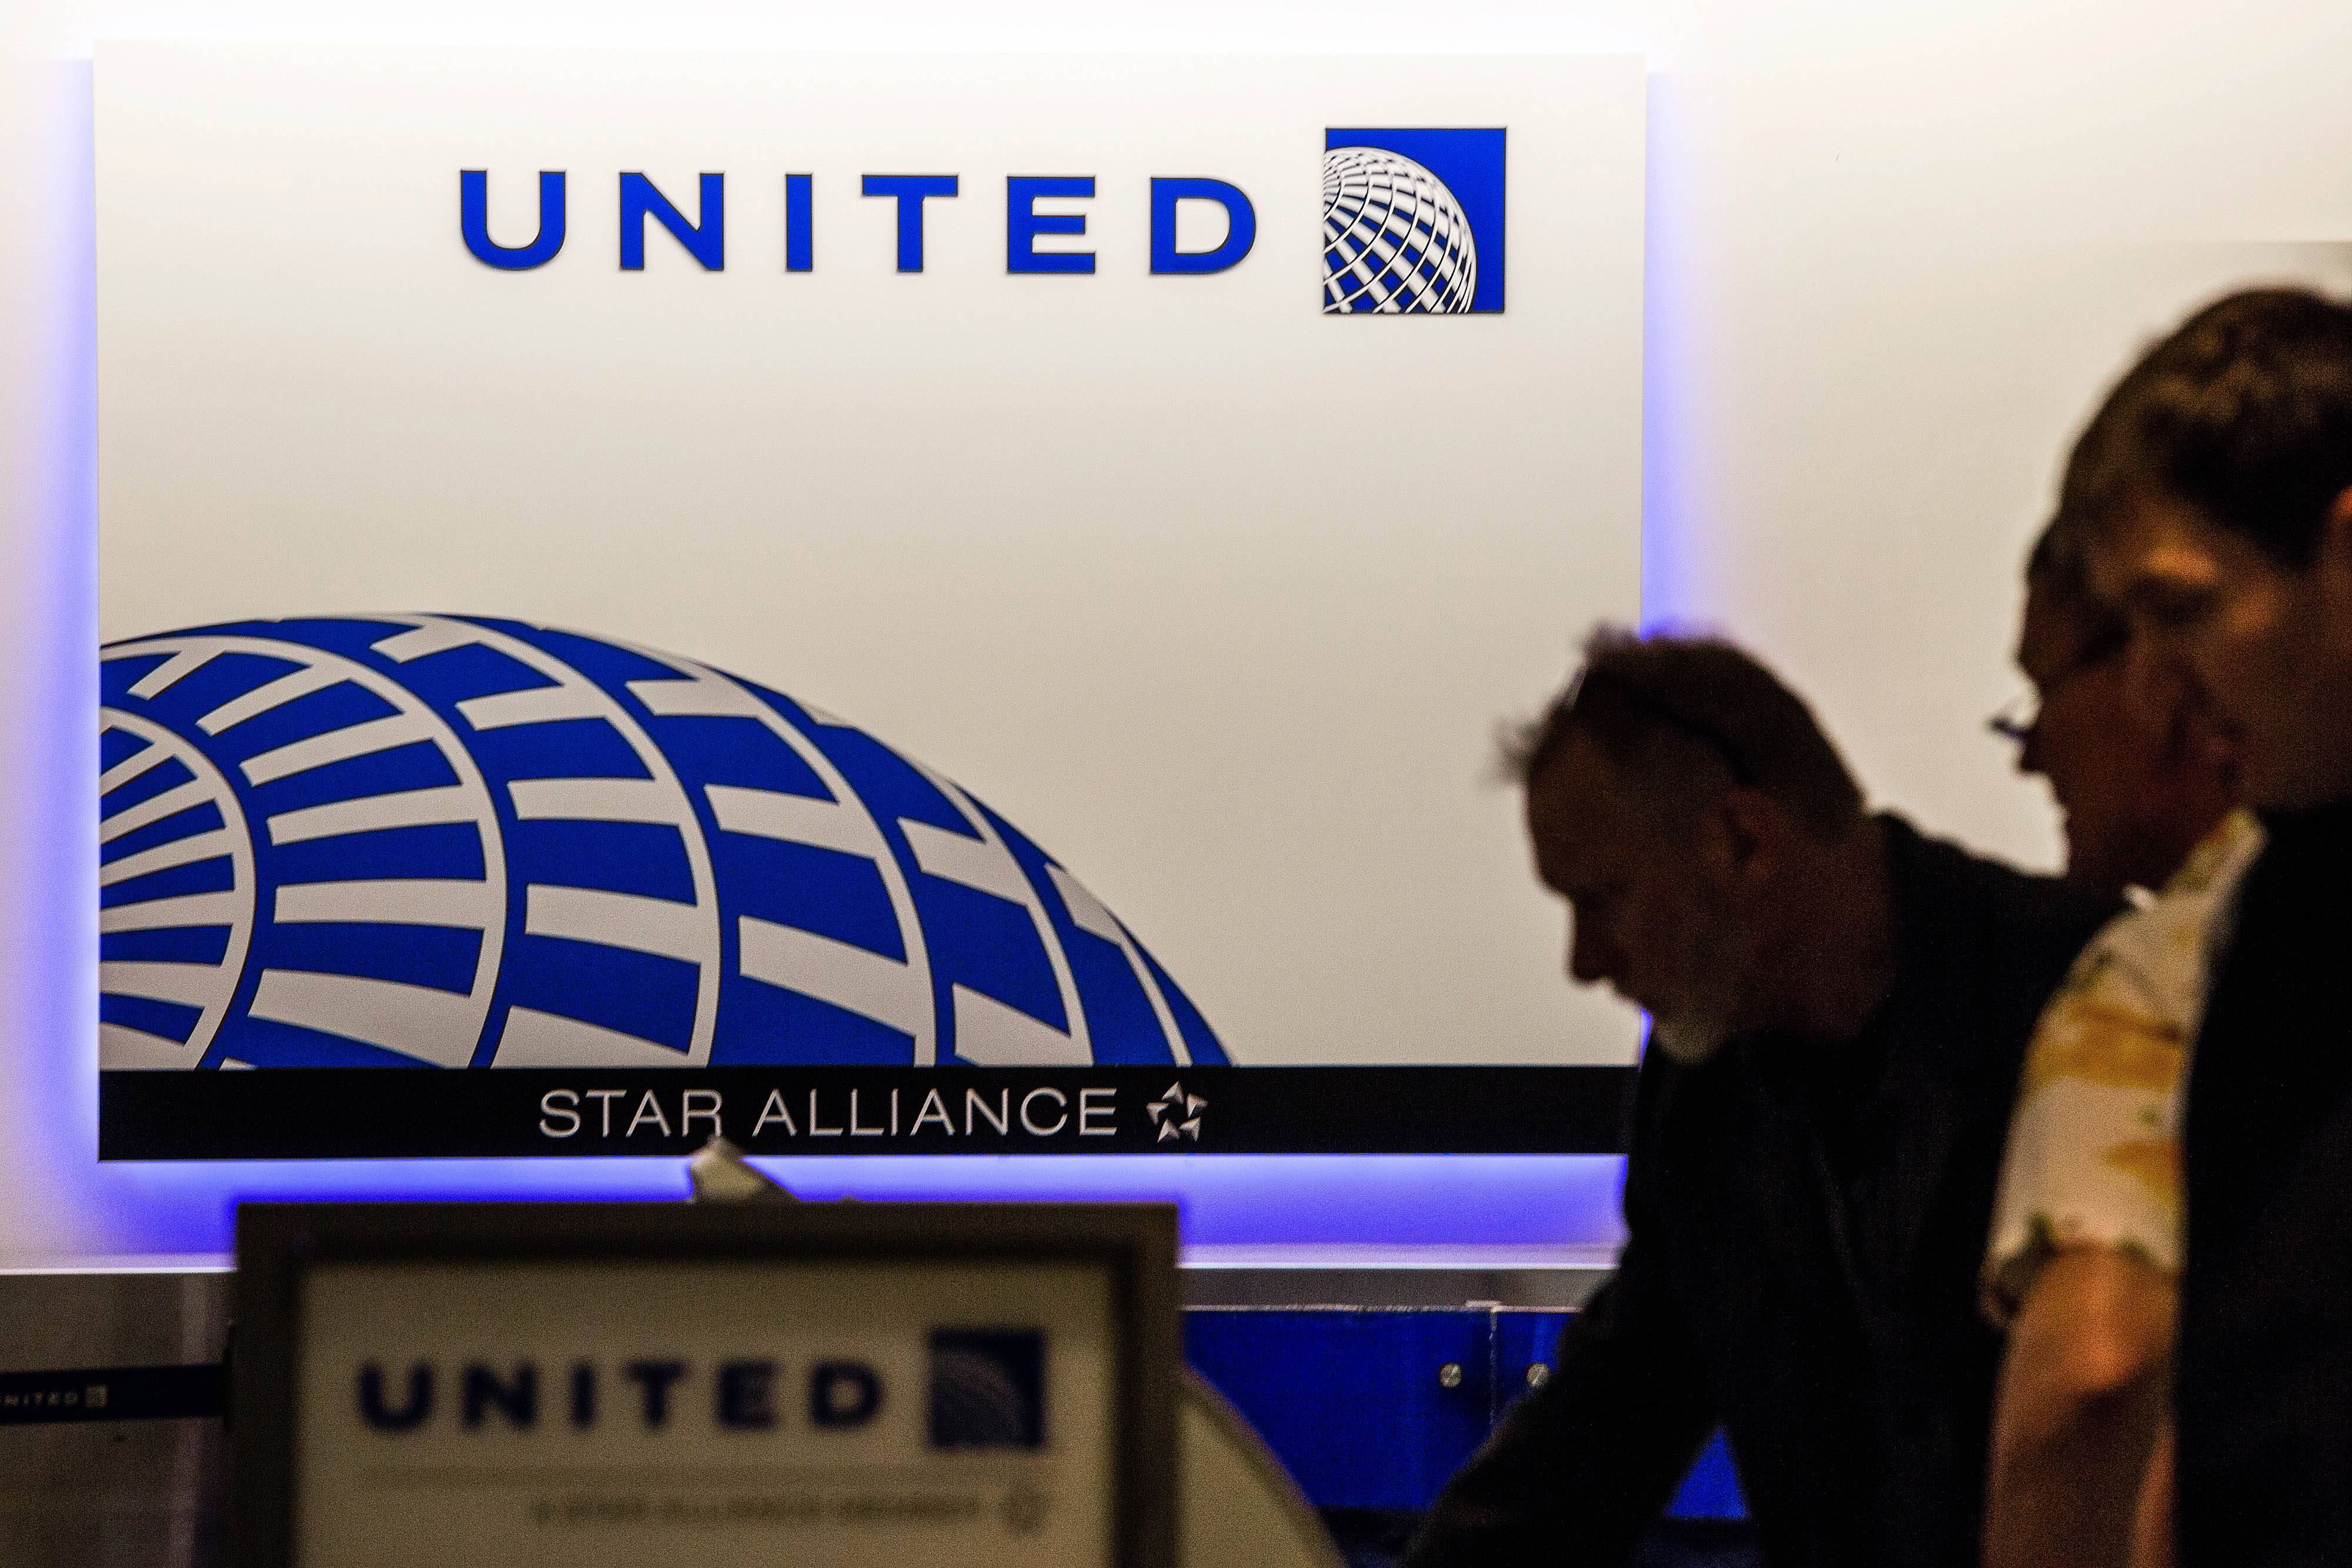 United Airlines admits several mistakes were made before, during and after a man was violently dragged off a flight earlier this month.